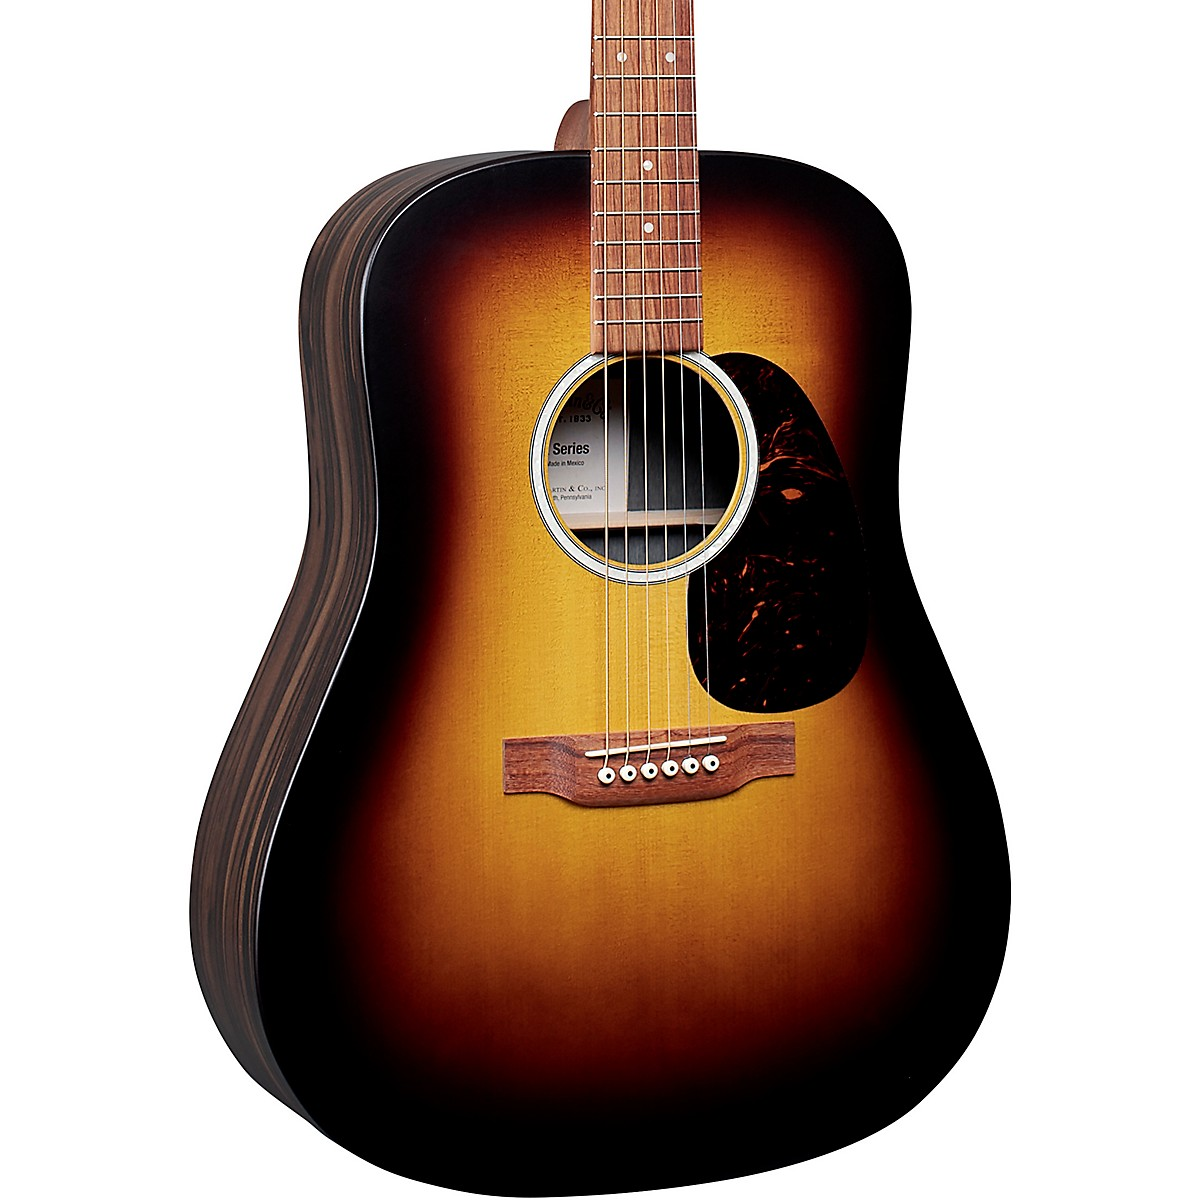 Martin D-X2E Macassar Ebony Sunburst Dreadnought Acoustic-Electric Guitar